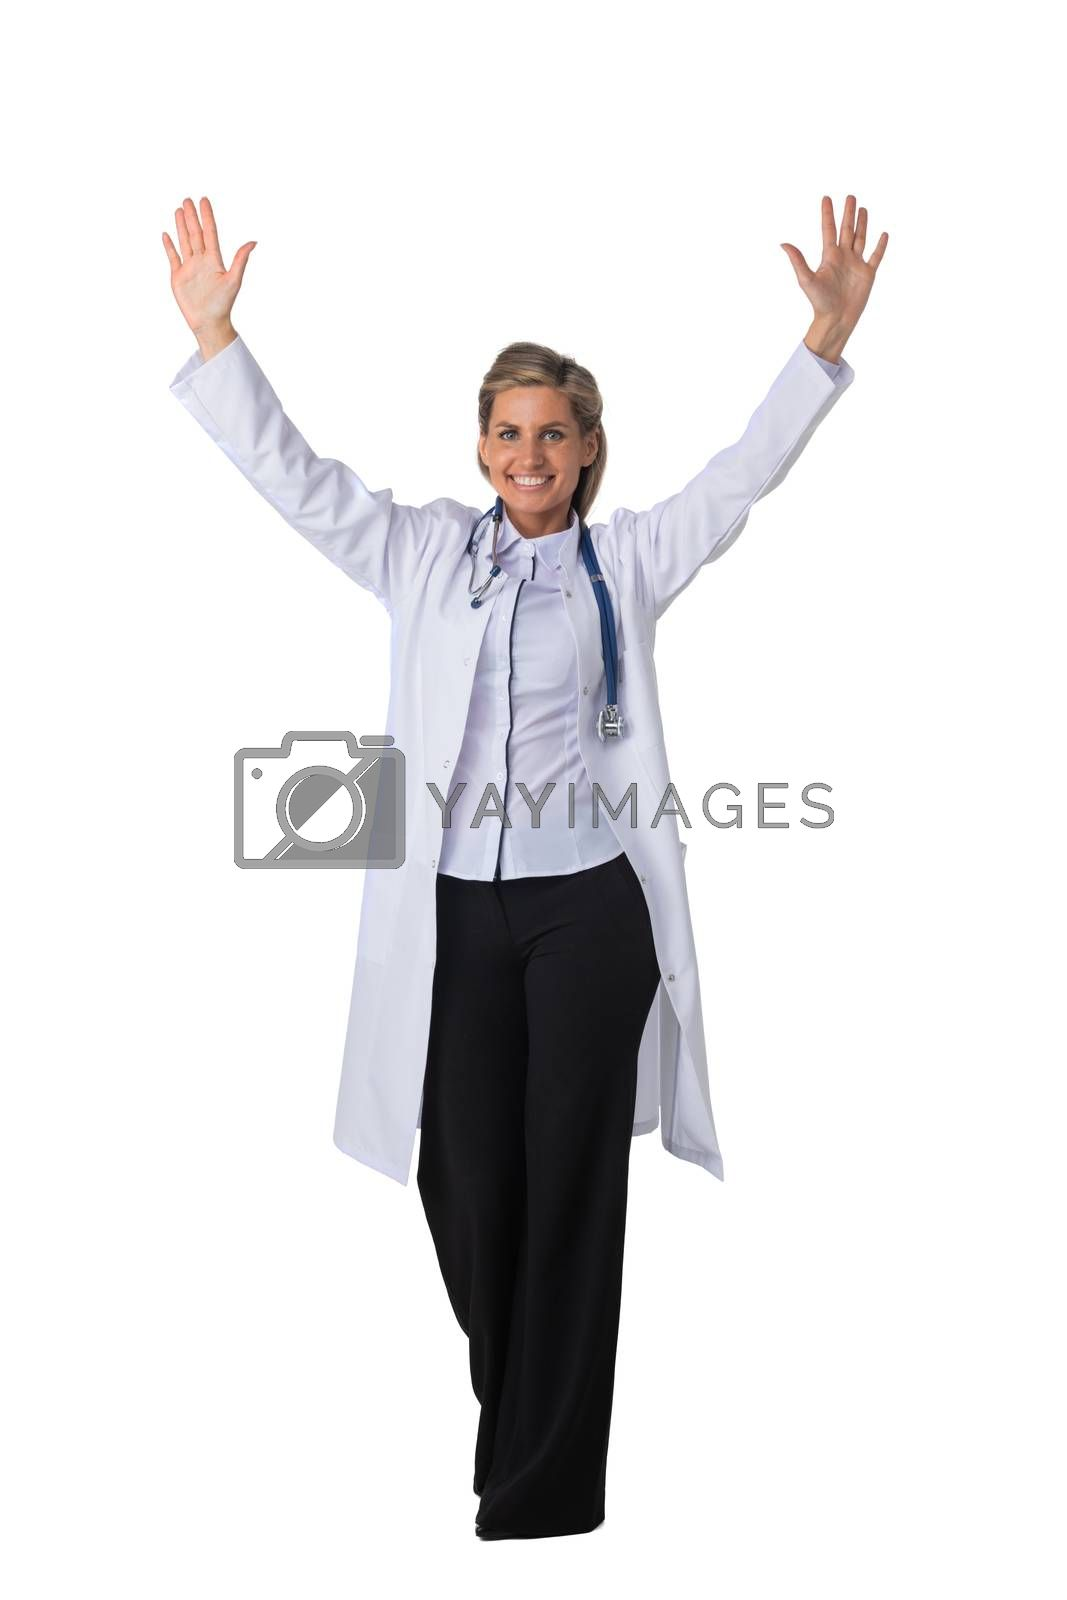 Young female medical doctor with stethoscope with raised arms isolated on white background full length studio portrait